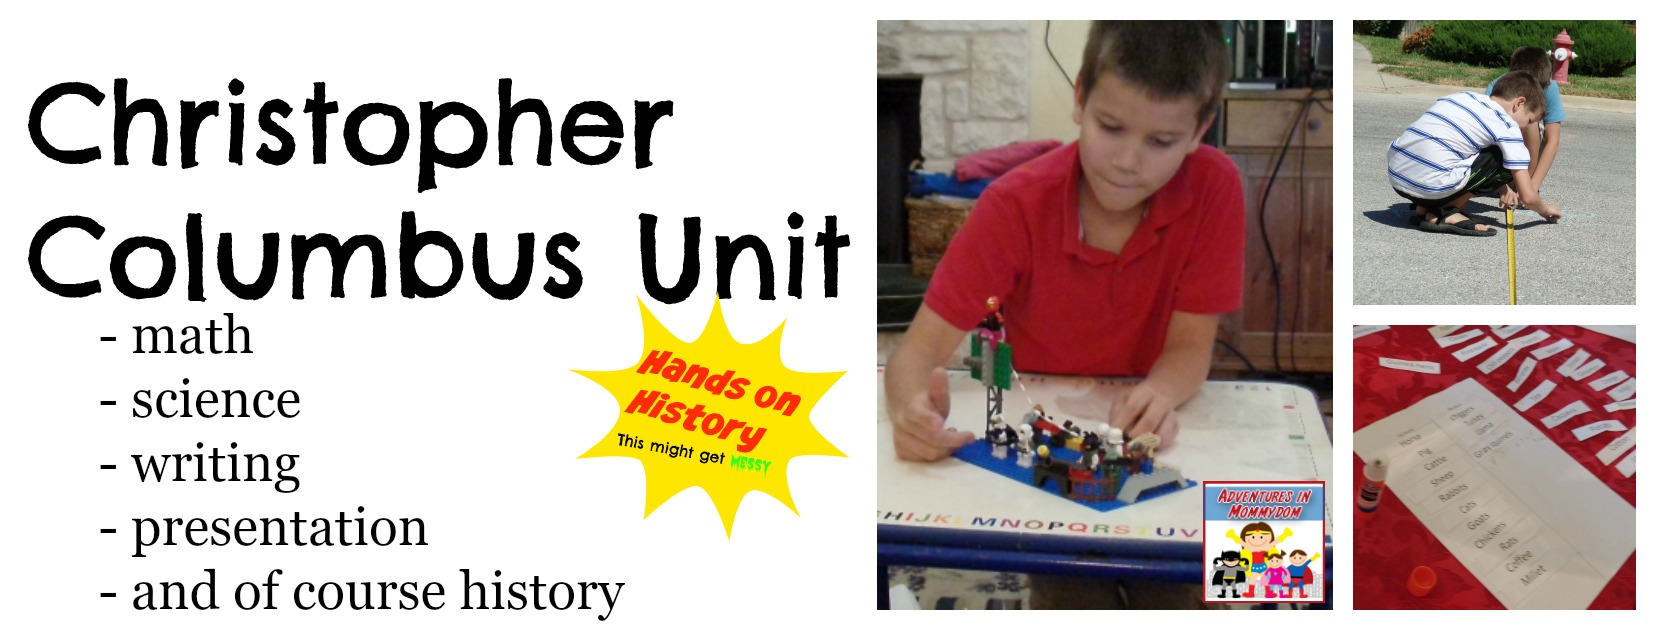 Christopher Columbus unit for elementary